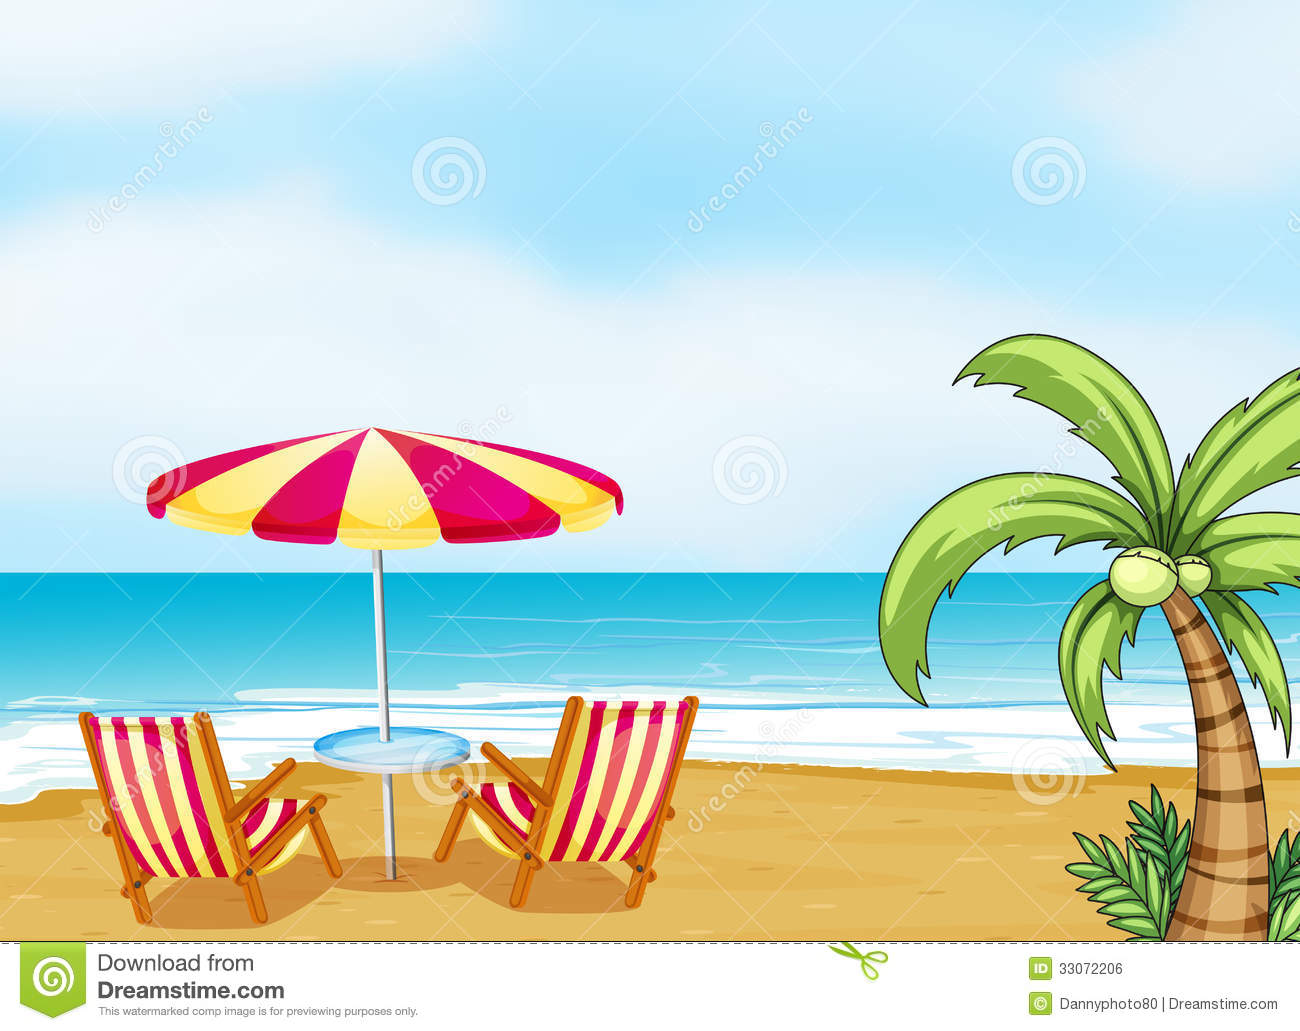 hight resolution of beach chair and umbrella free clipart